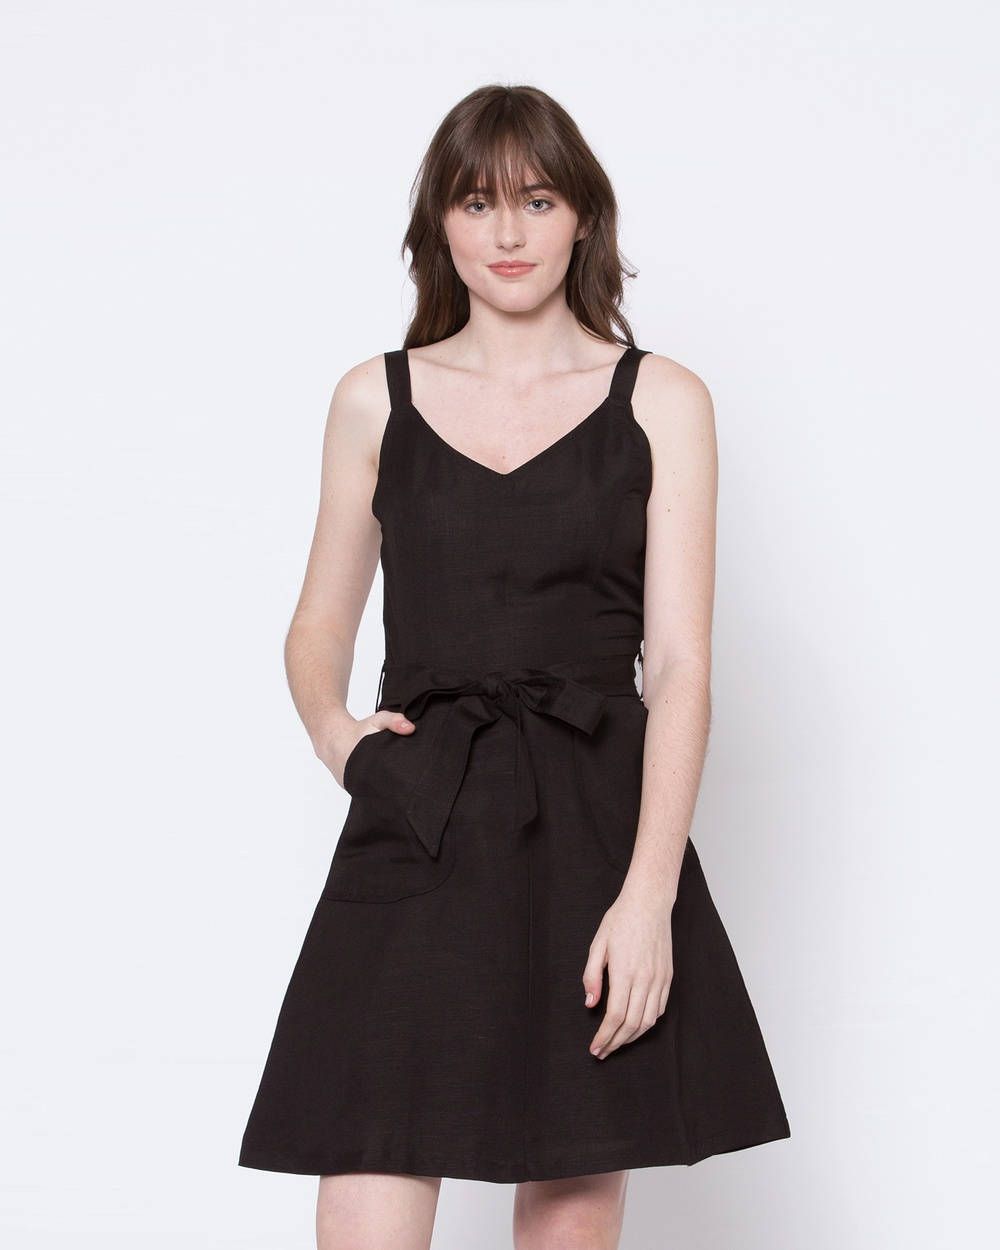 Dangerfield Black Ferris Wheel Dress